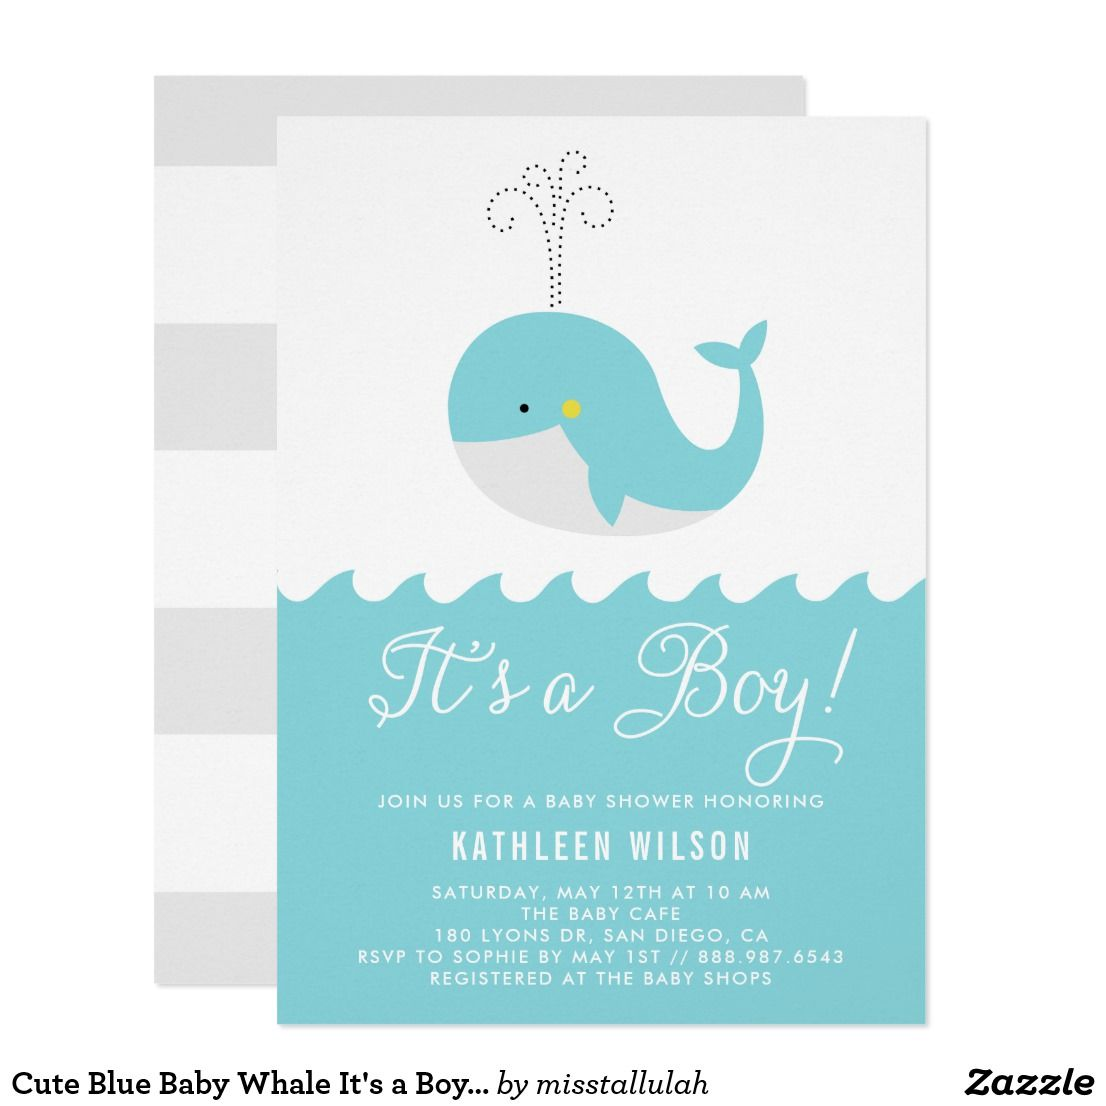 Cute blue baby whale its a boy baby shower invitation babies and cute blue baby whale its a boy baby shower card a baby shower invitation featuring whimsical script and cute illustrations this nautical themed baby filmwisefo